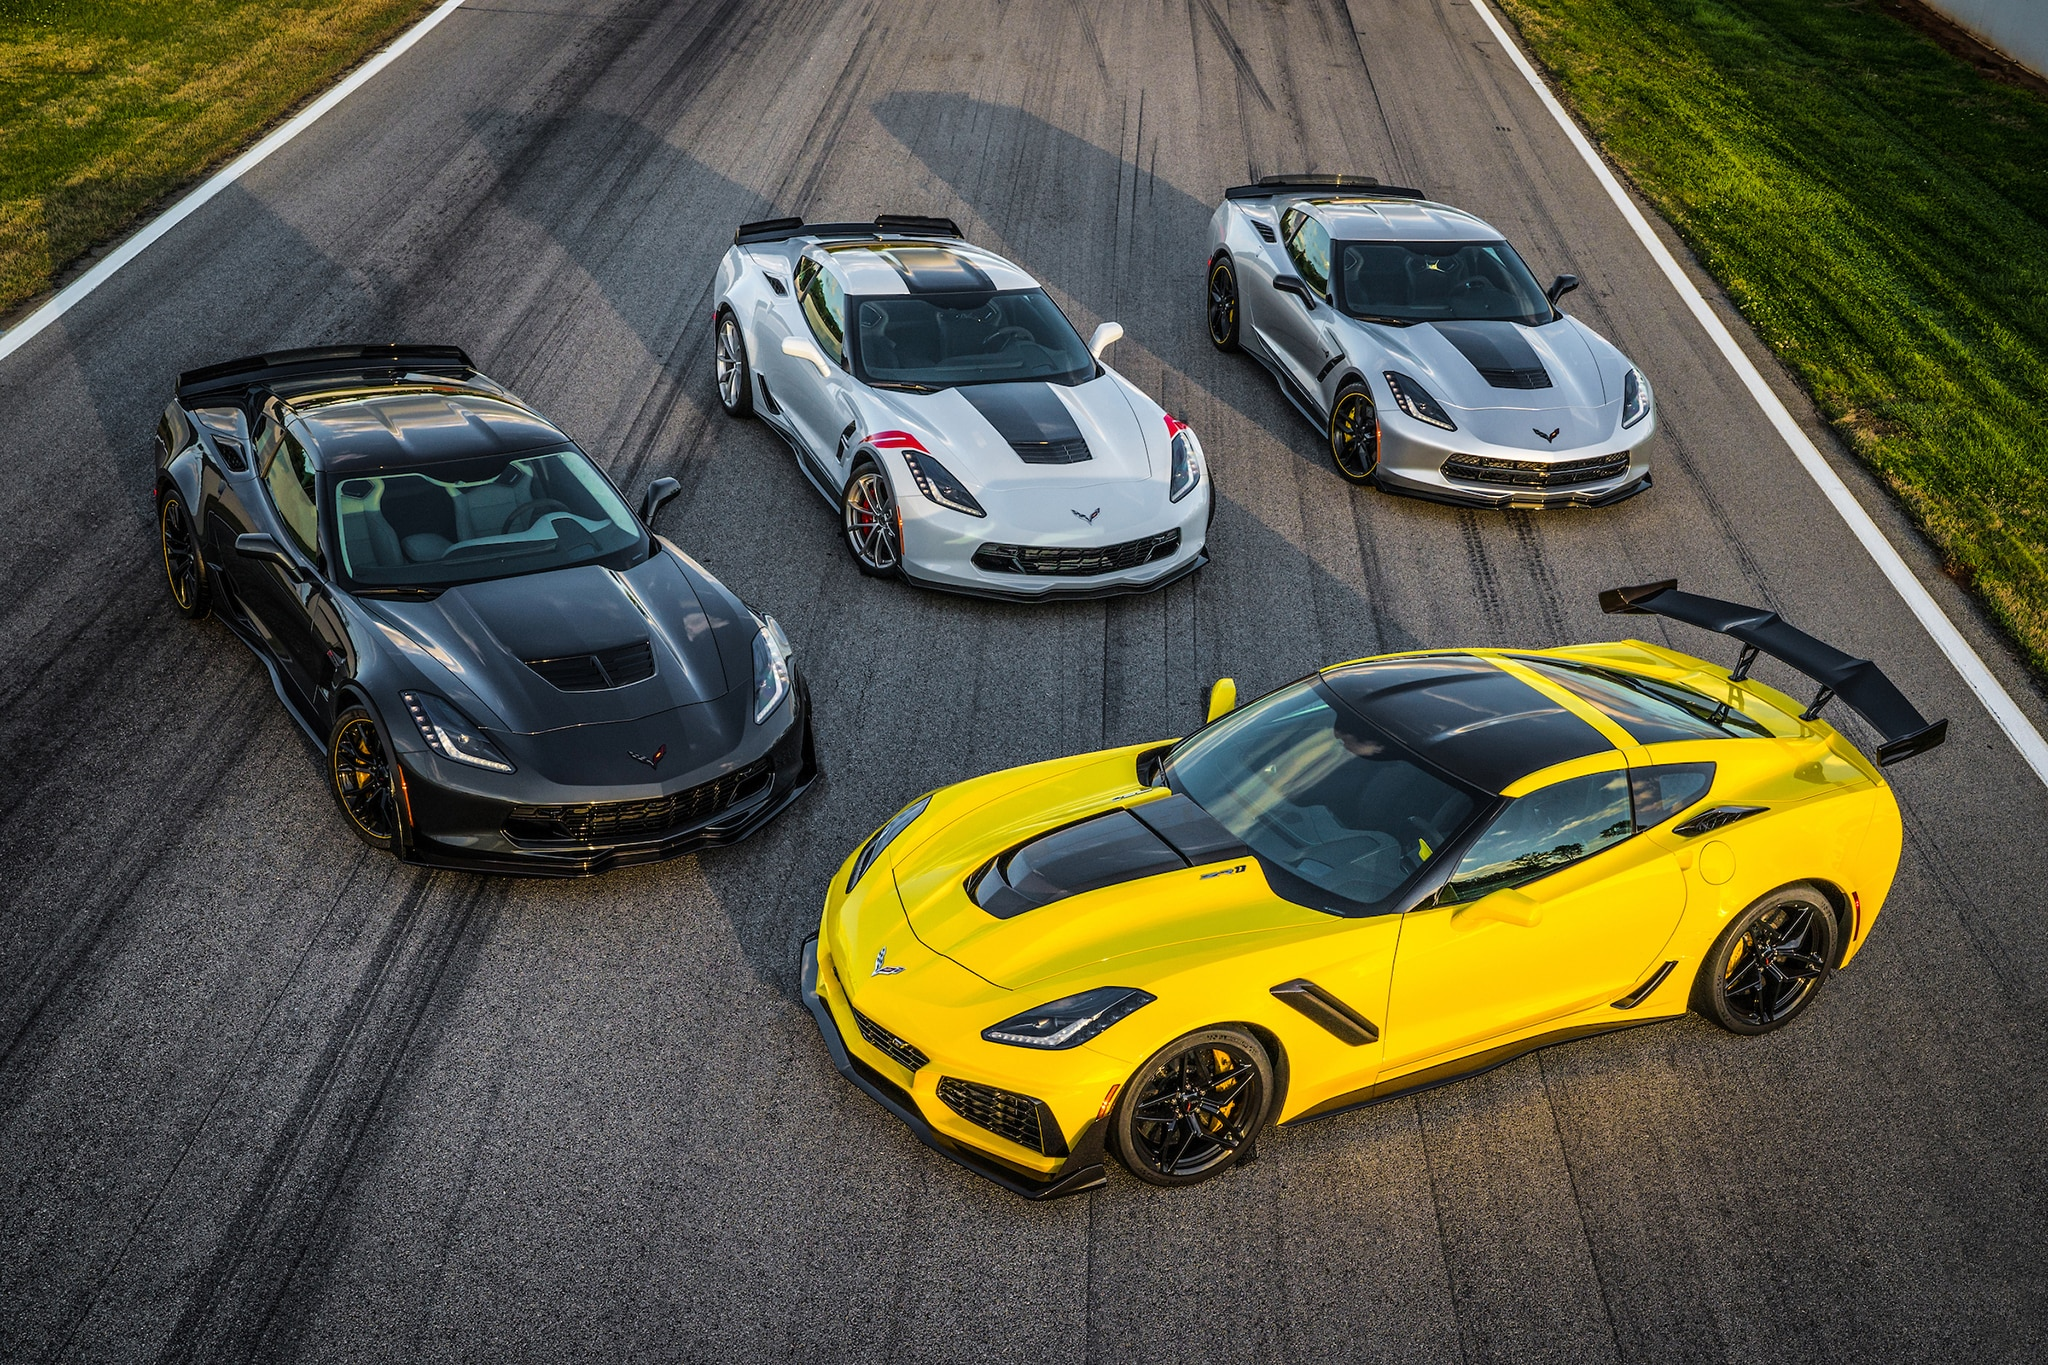 2019 Corvette Zr1 >> 2019 Chevrolet Corvette ZR1 First Drive | Automobile Magazine